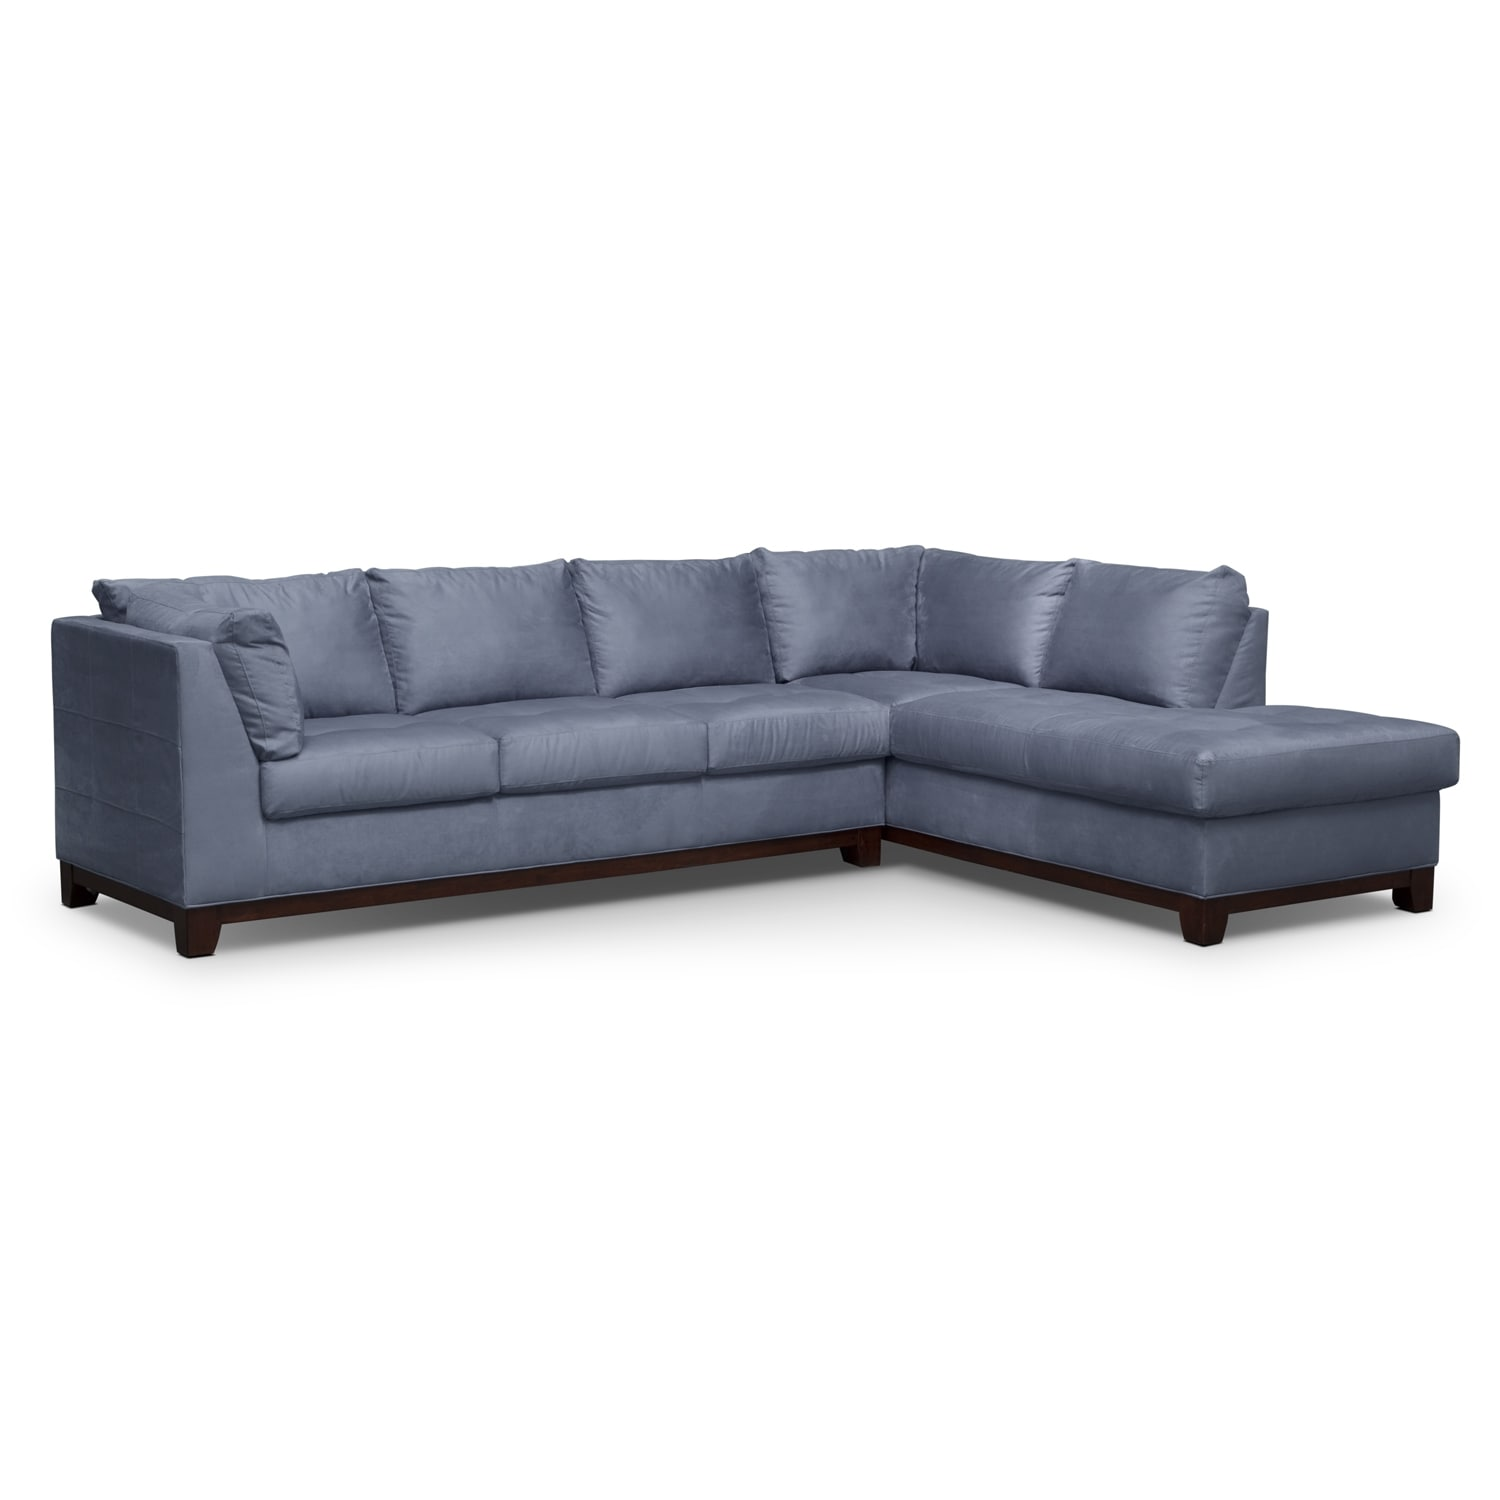 Soho 2 piece sectional with right facing chaise steel for 2 piece sectional sofa with chaise